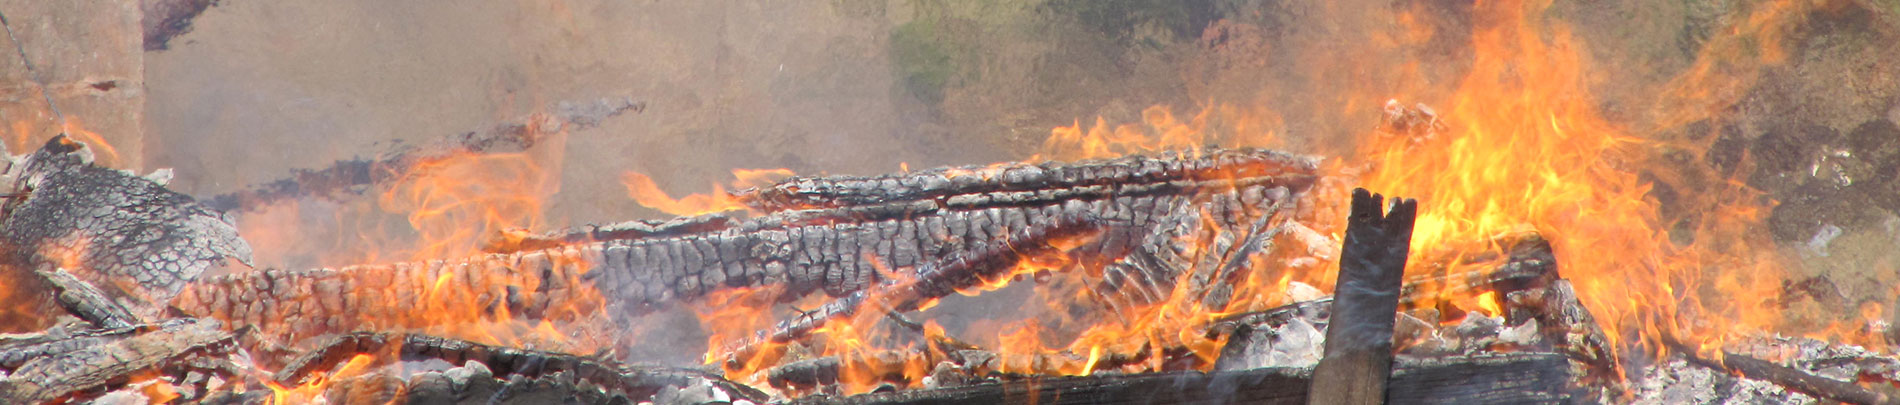 A close up view of an intense fire.